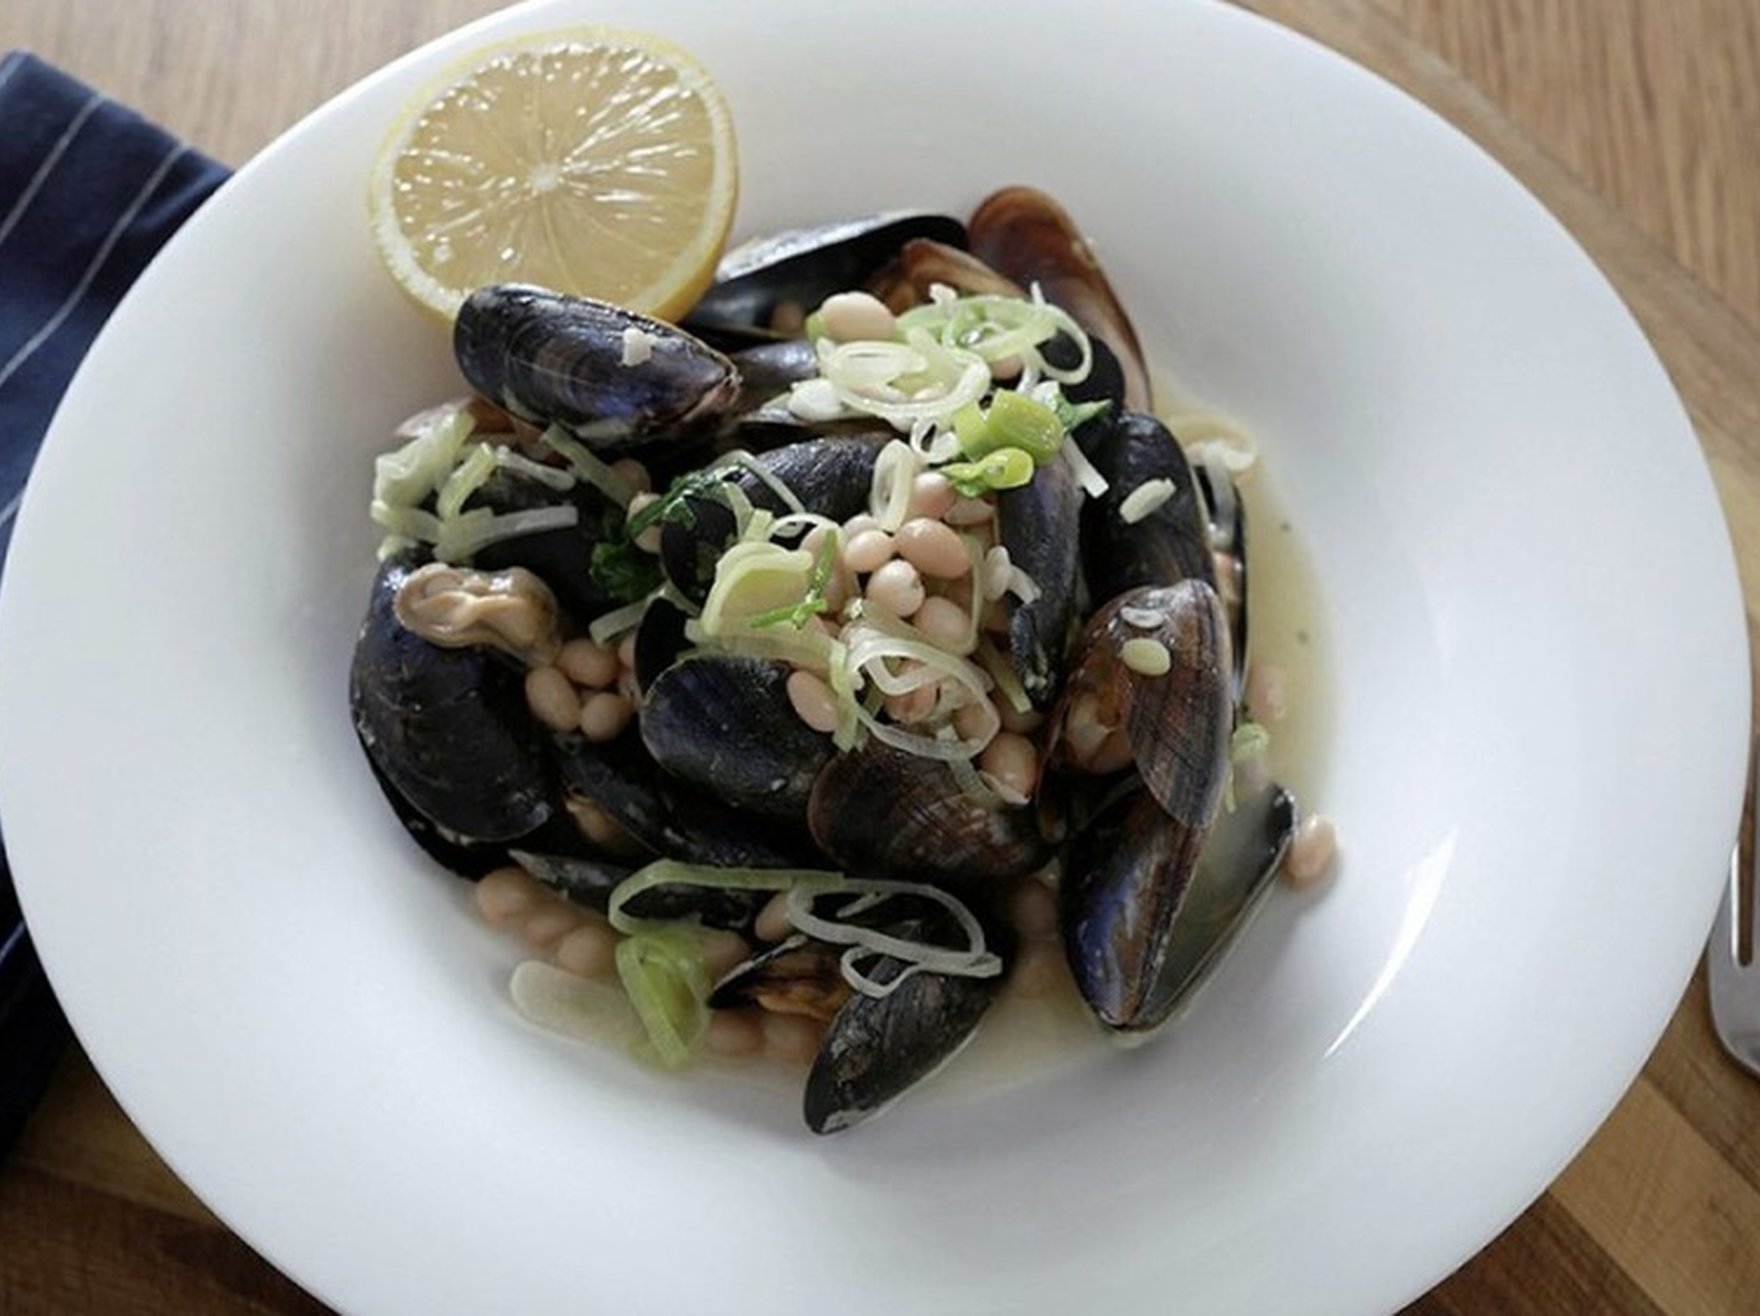 Roasted garlic and chilli clams, mussels with cider and white beans | James St